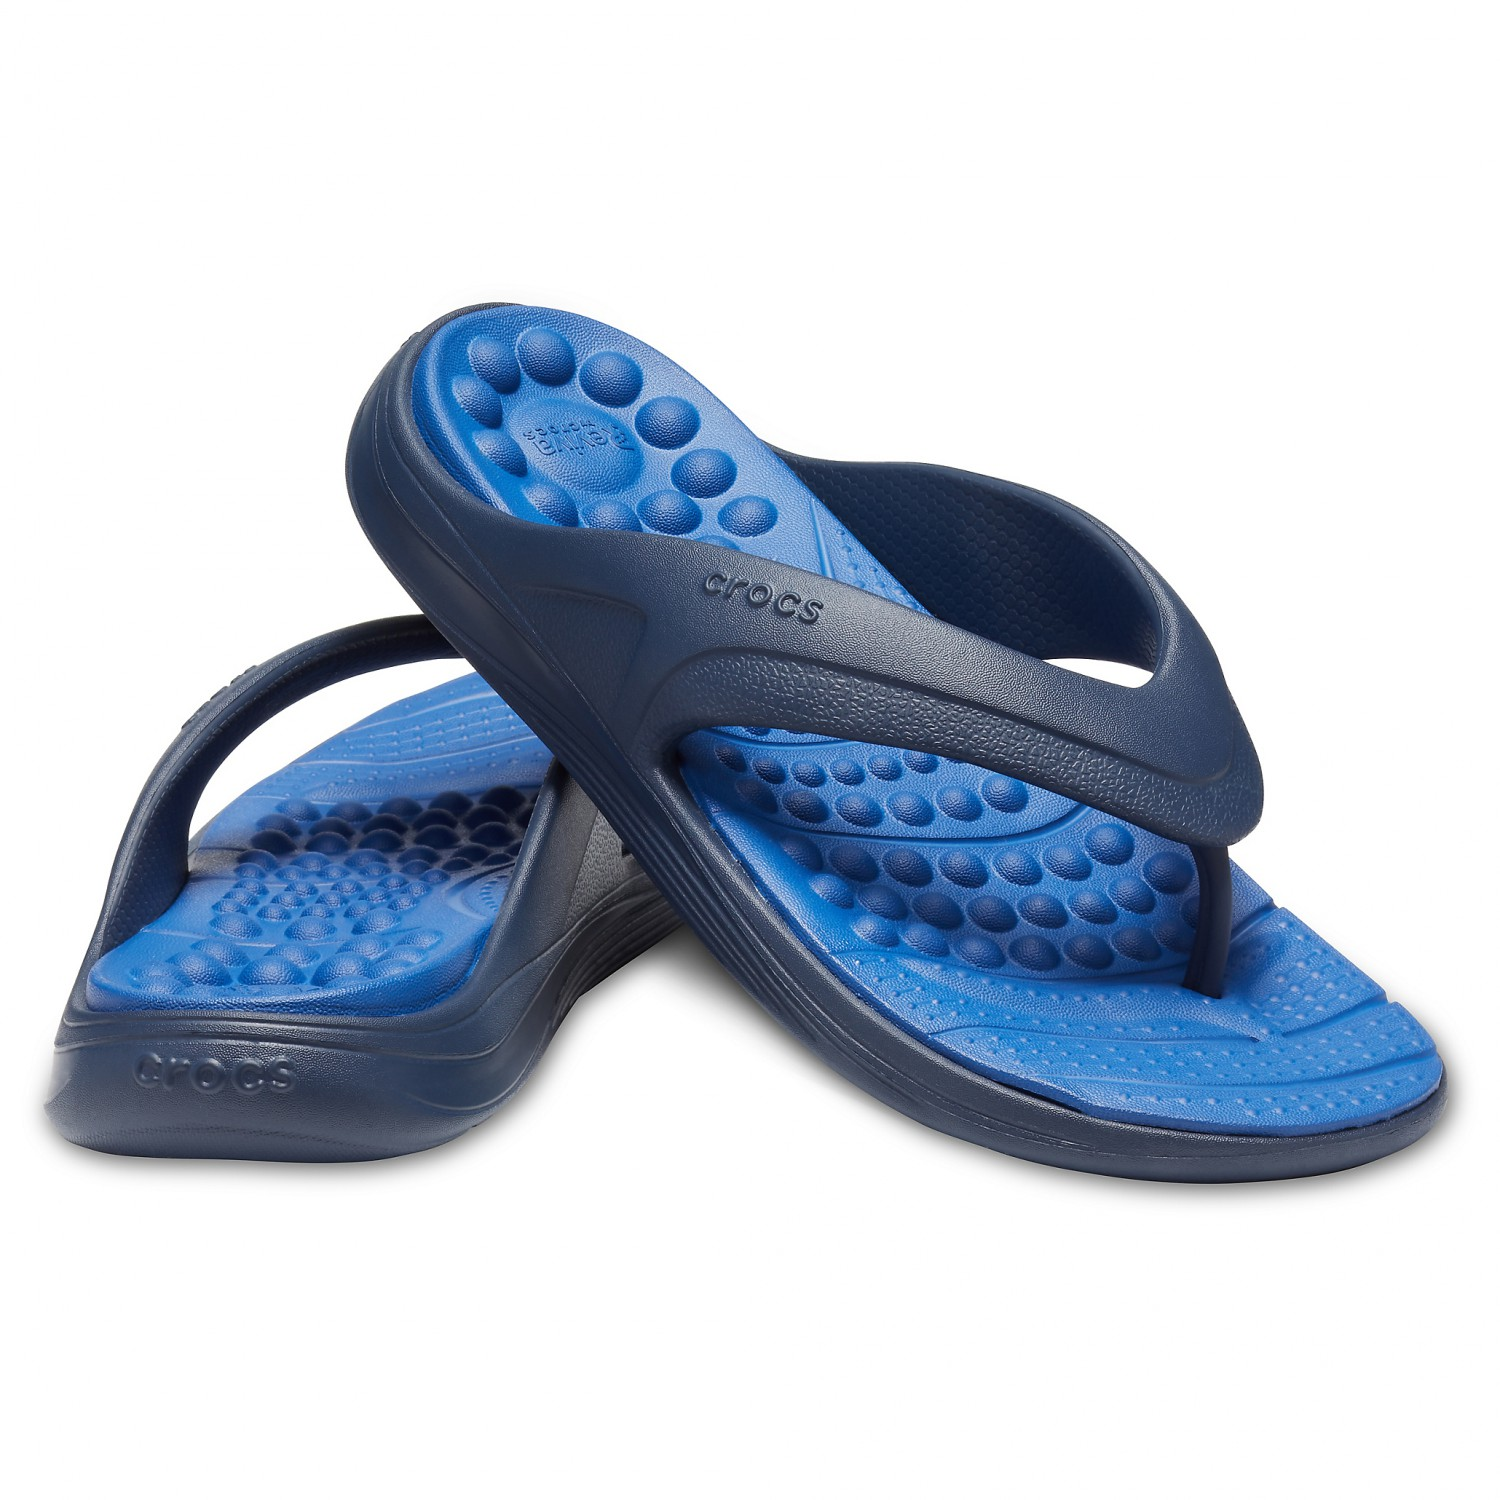 4be78d5c1cd3 ... Crocs - Reviva Flip - Sandals ...